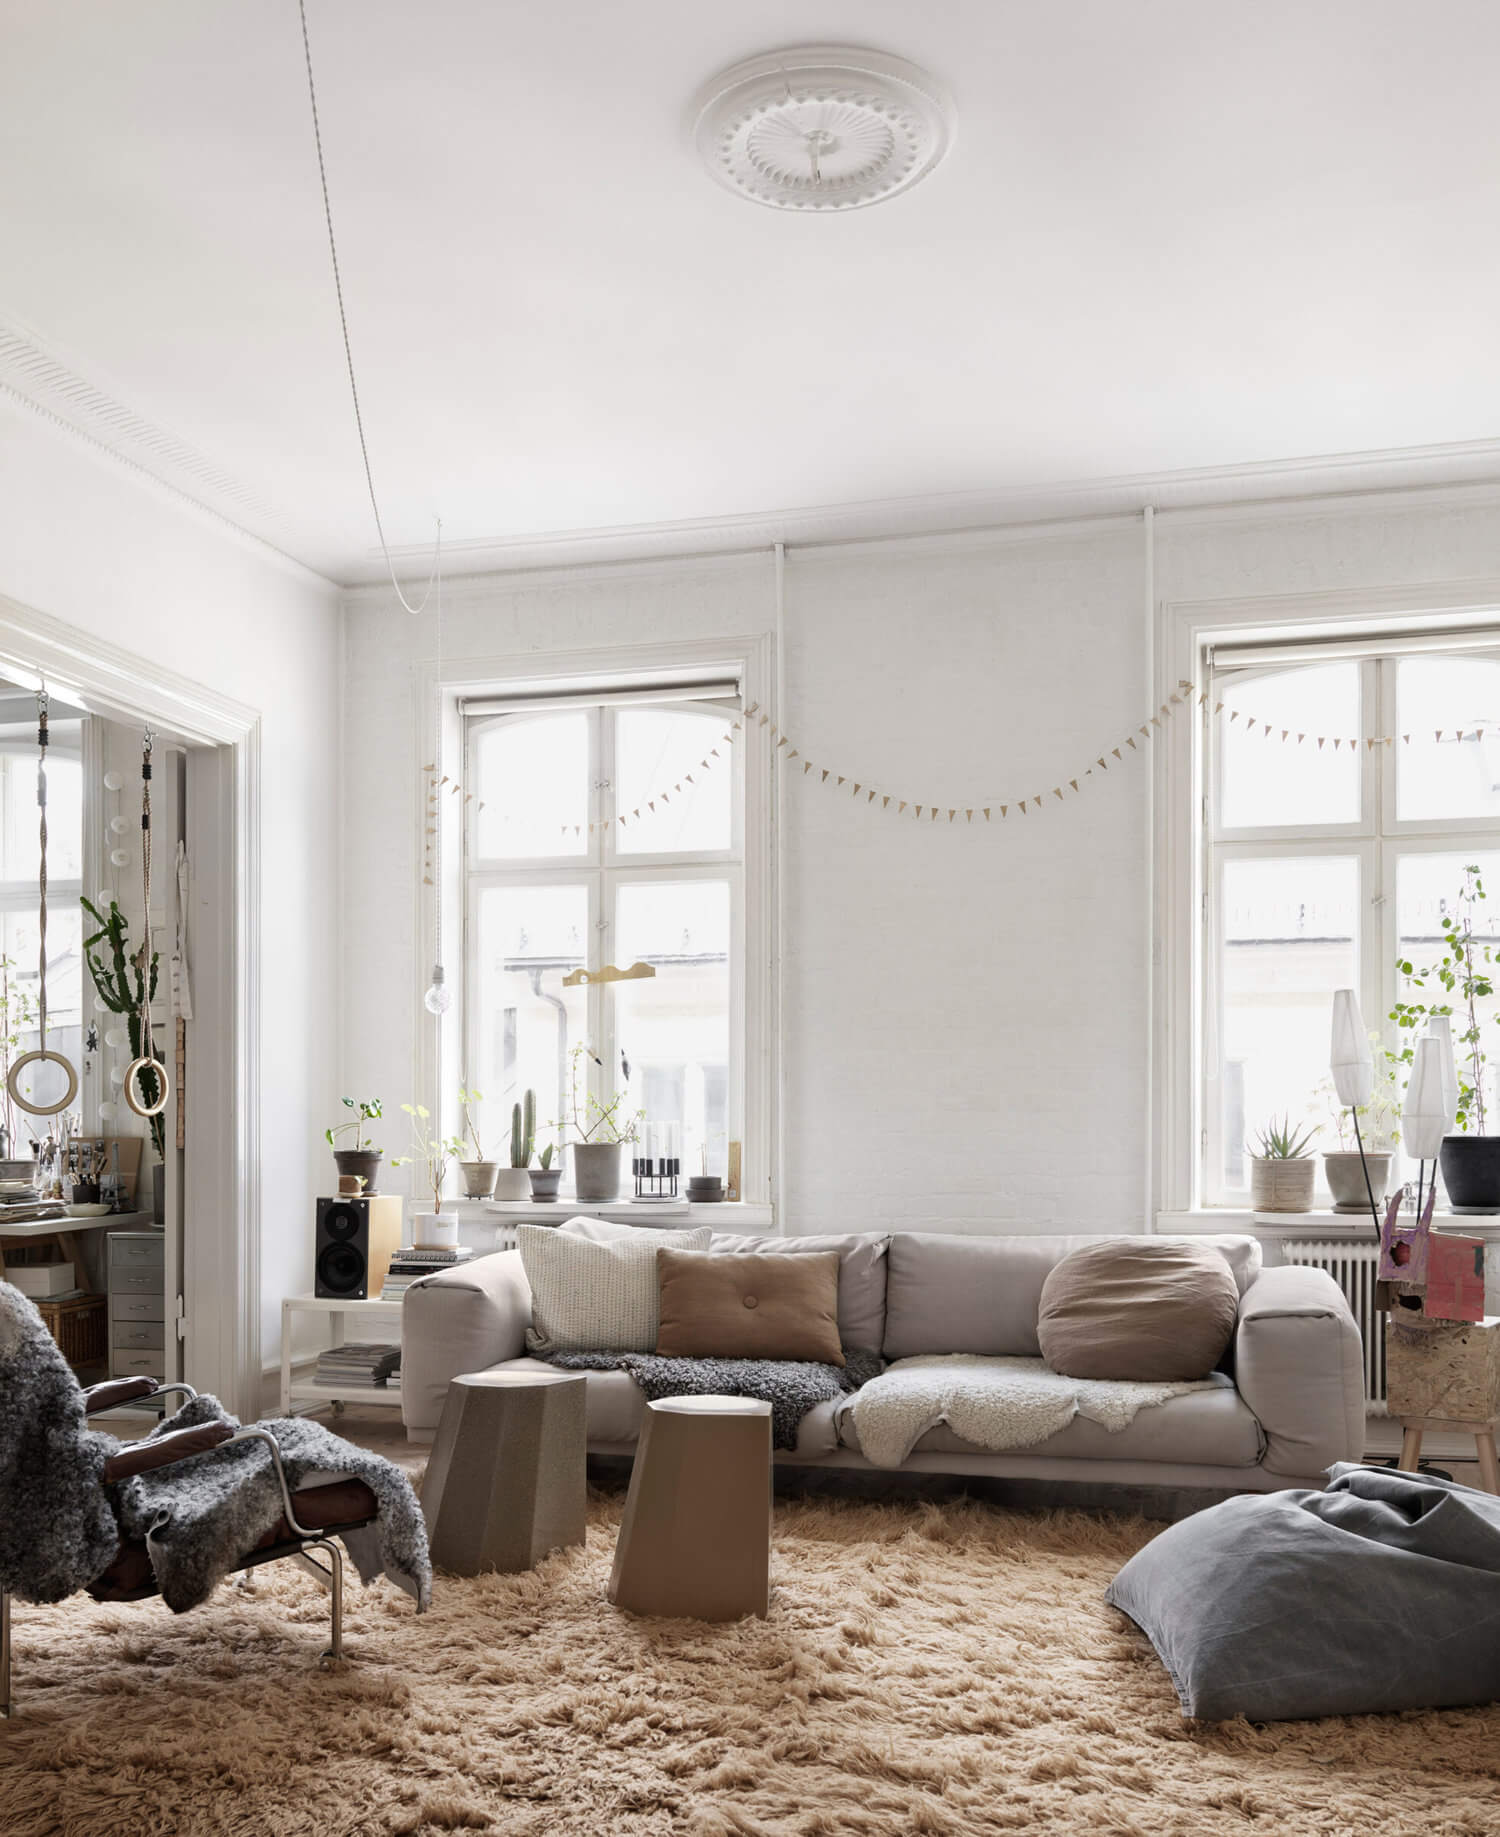 Soft Neutral Tones in Nina Persson's Malmö Home